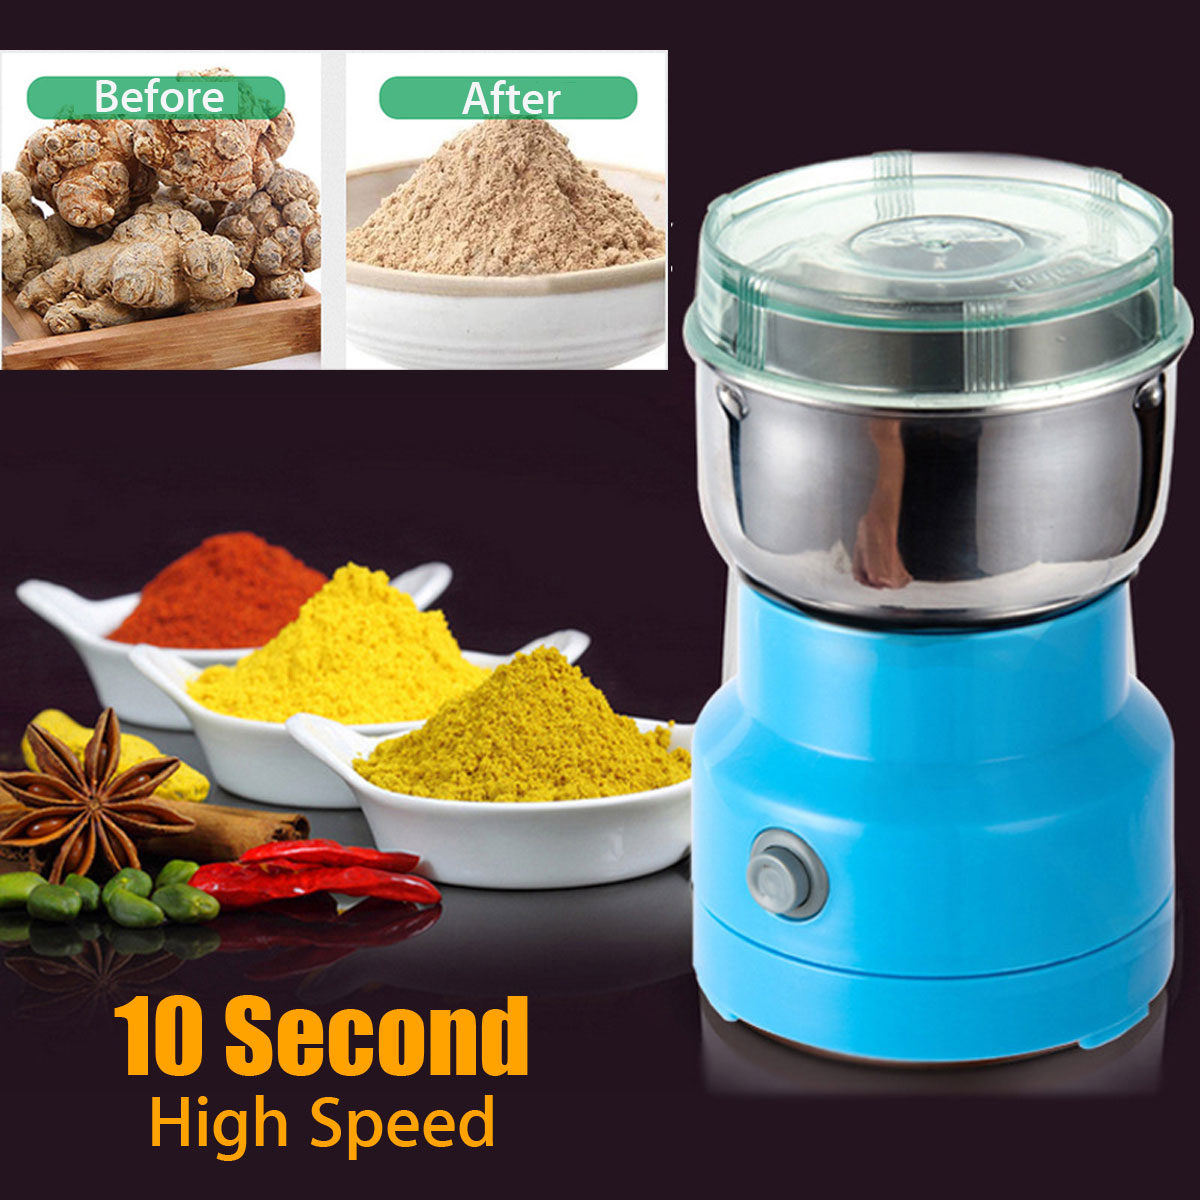 NEW Electric Herbs Spices Nuts Grains Coffee Bean Grinder Mill Grinding DIY Tool Home Medicine Flour Powder Crusher